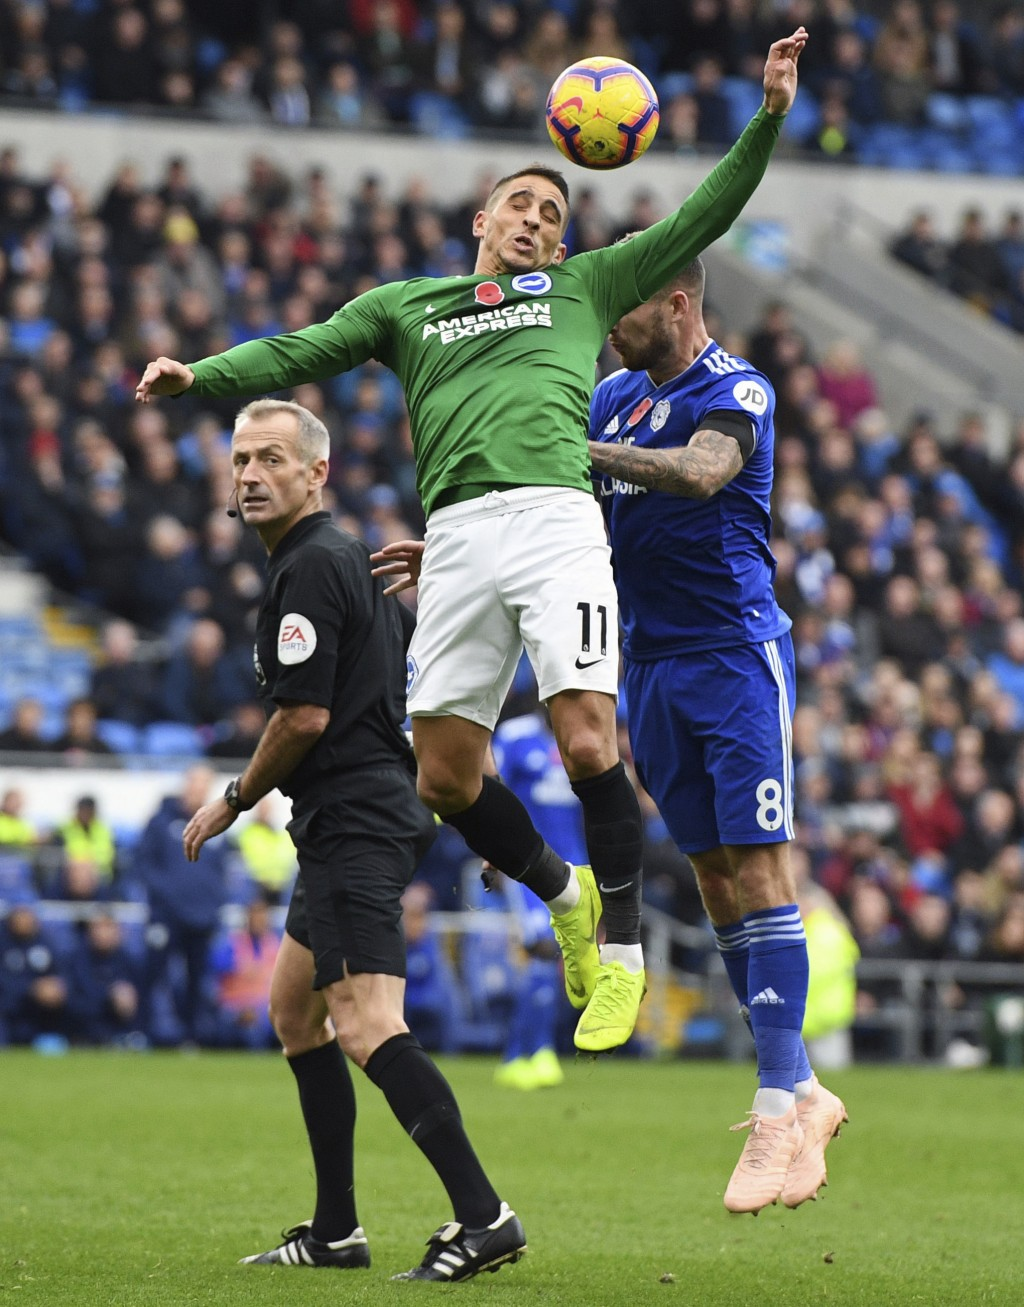 Brighton & Hove Albion's Anthony Knockaert and Cardiff City's Joe Ralls,, right, leap for the ball during the English Premier League soccer match betw